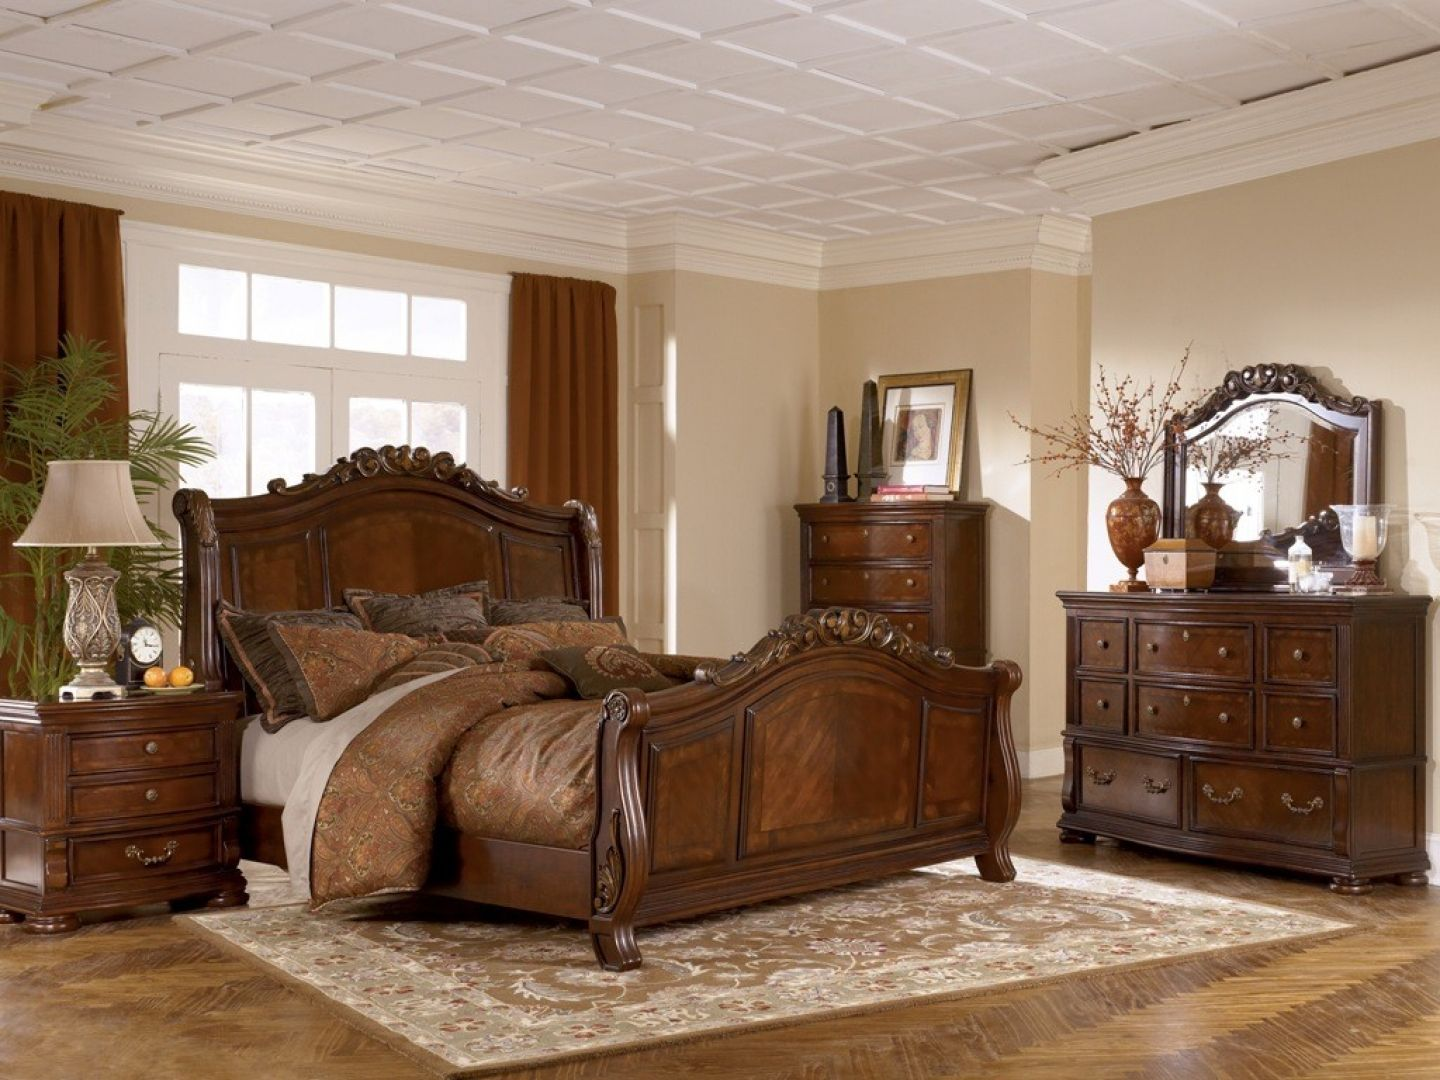 Ashley Furniture Bedroom Furniture | Bedroom Furniture For Girls : King Size  Bedroom Sets Ashley Furniture